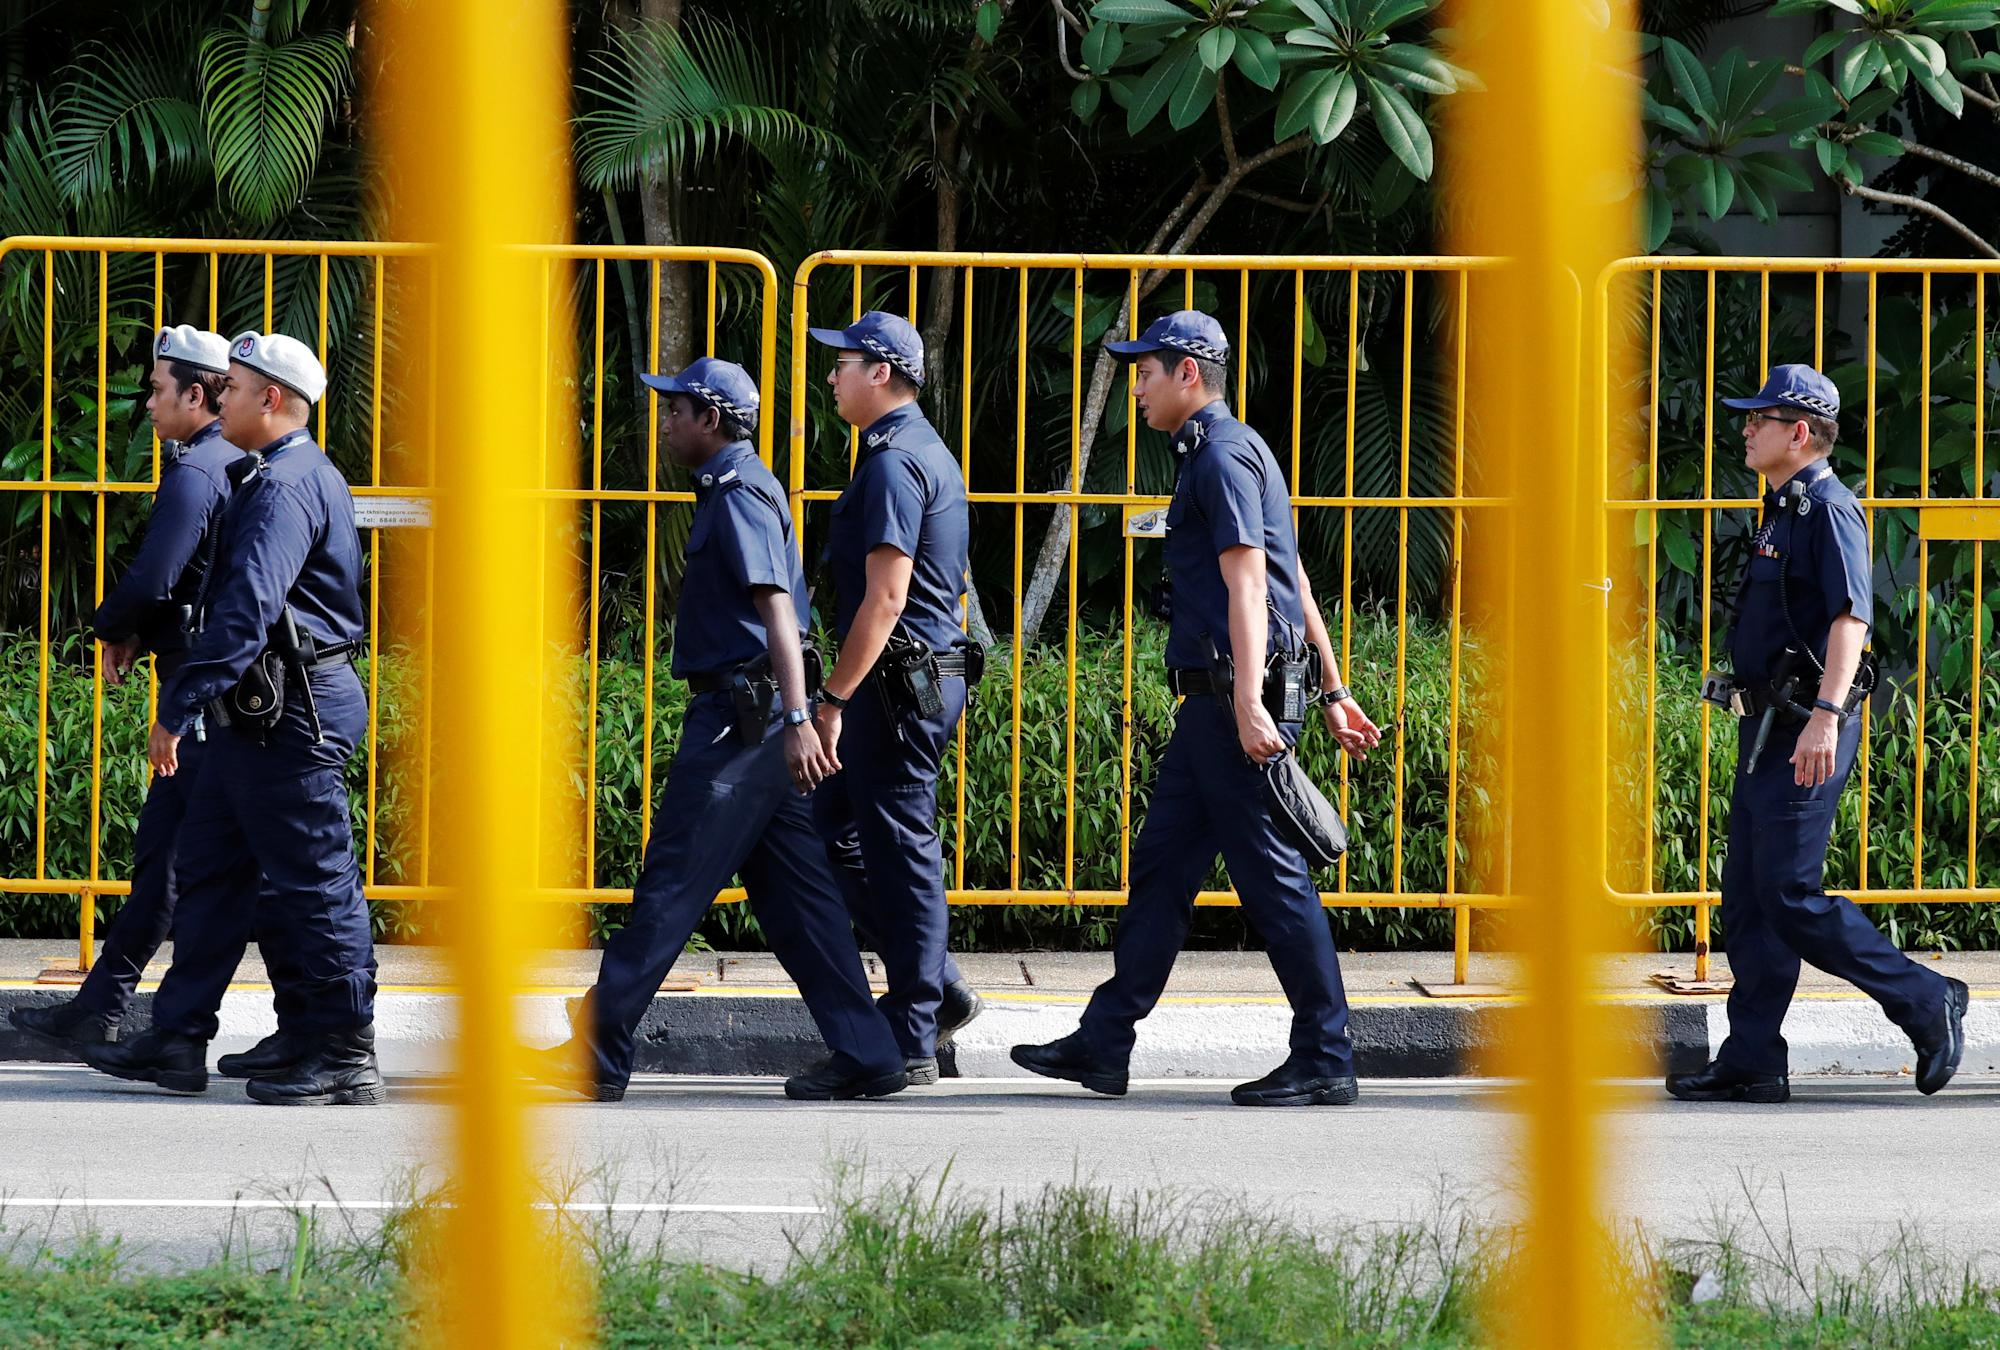 Mha To Raise Retirement Age For Uniformed Officers To 58 Shanmugam